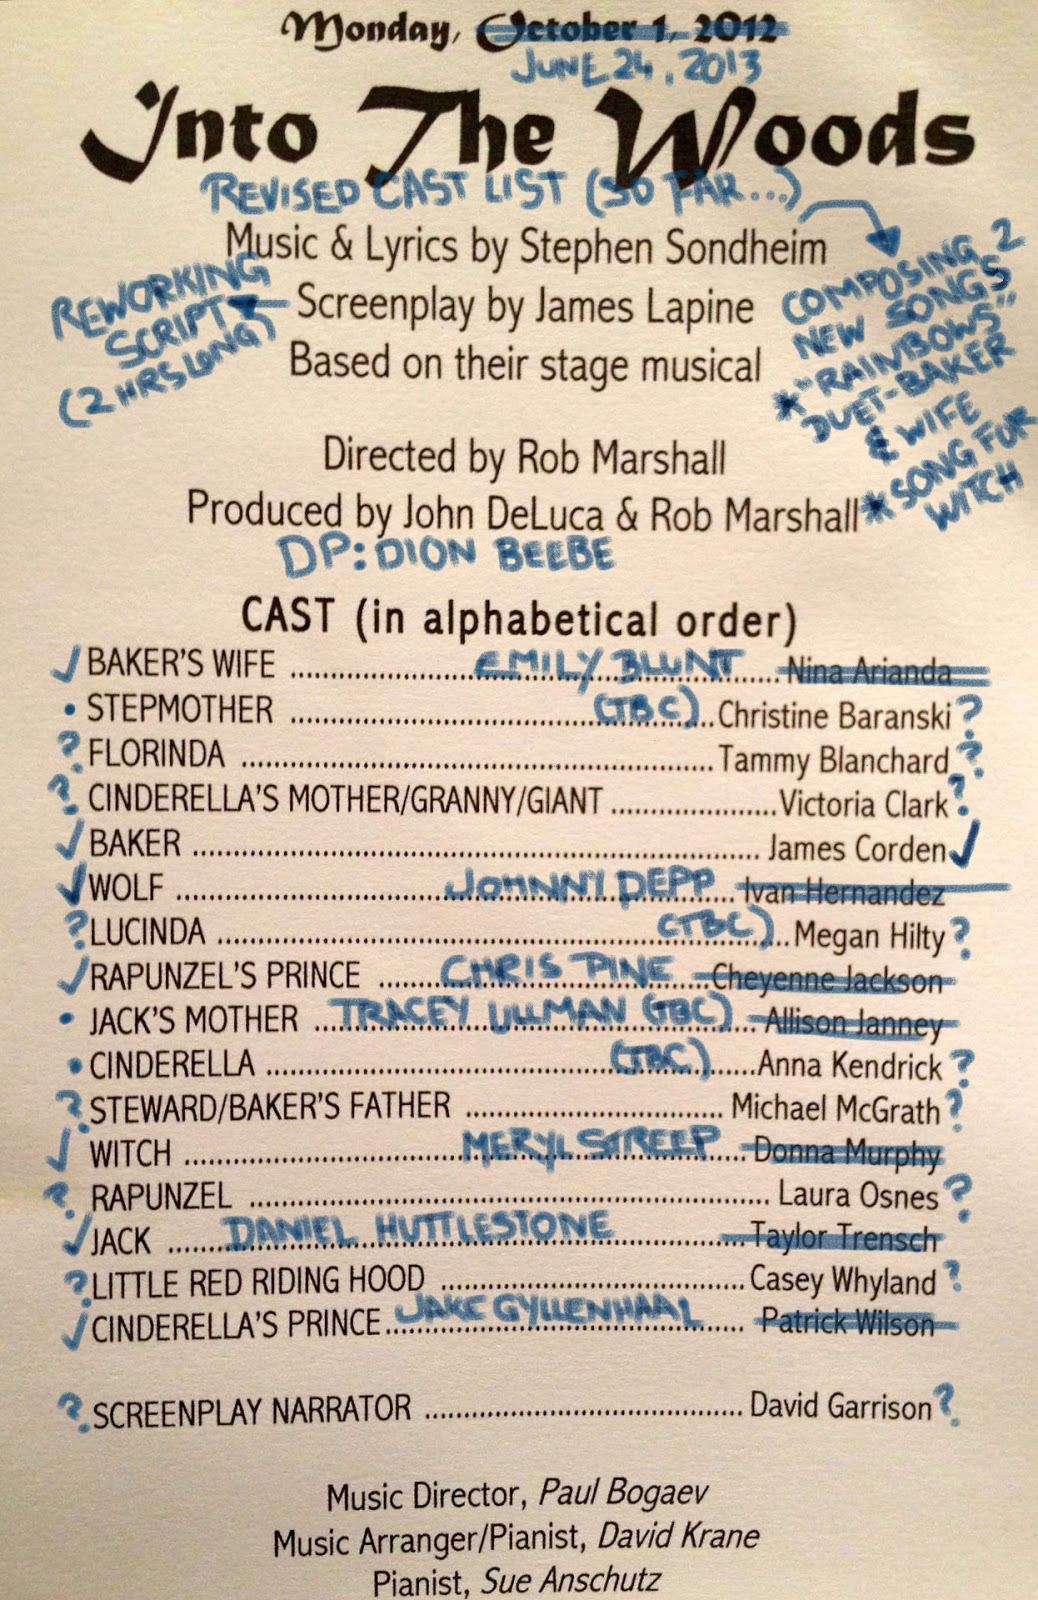 Once upon a blog into the woods movie revised cast list so revised cast list as of june 24 2013 incl tbc fandeluxe Gallery